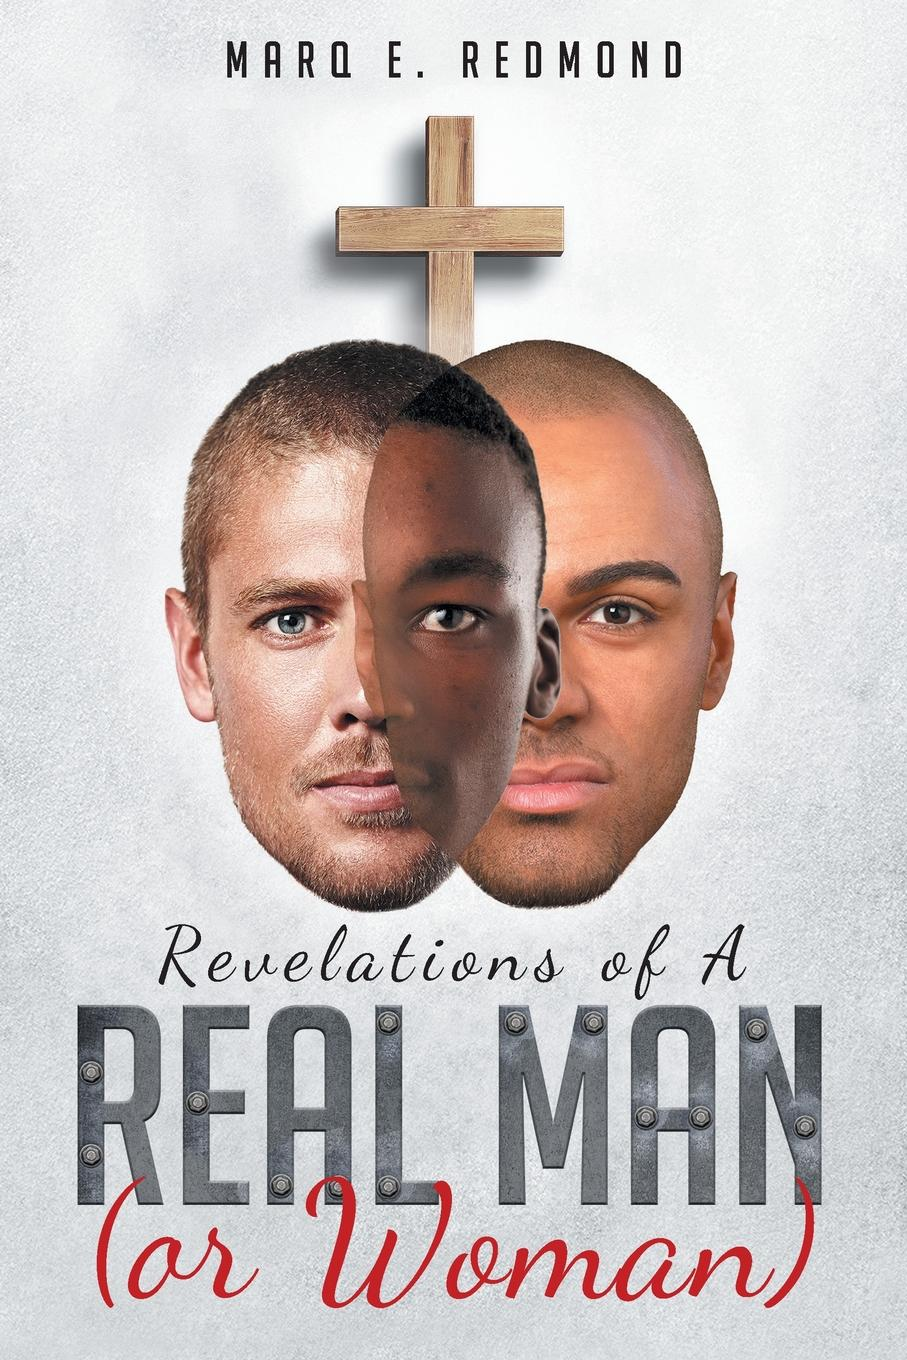 Marq E. Redmond Revelations of A Real Man (or Woman) marq e redmond revelations of a real man or woman